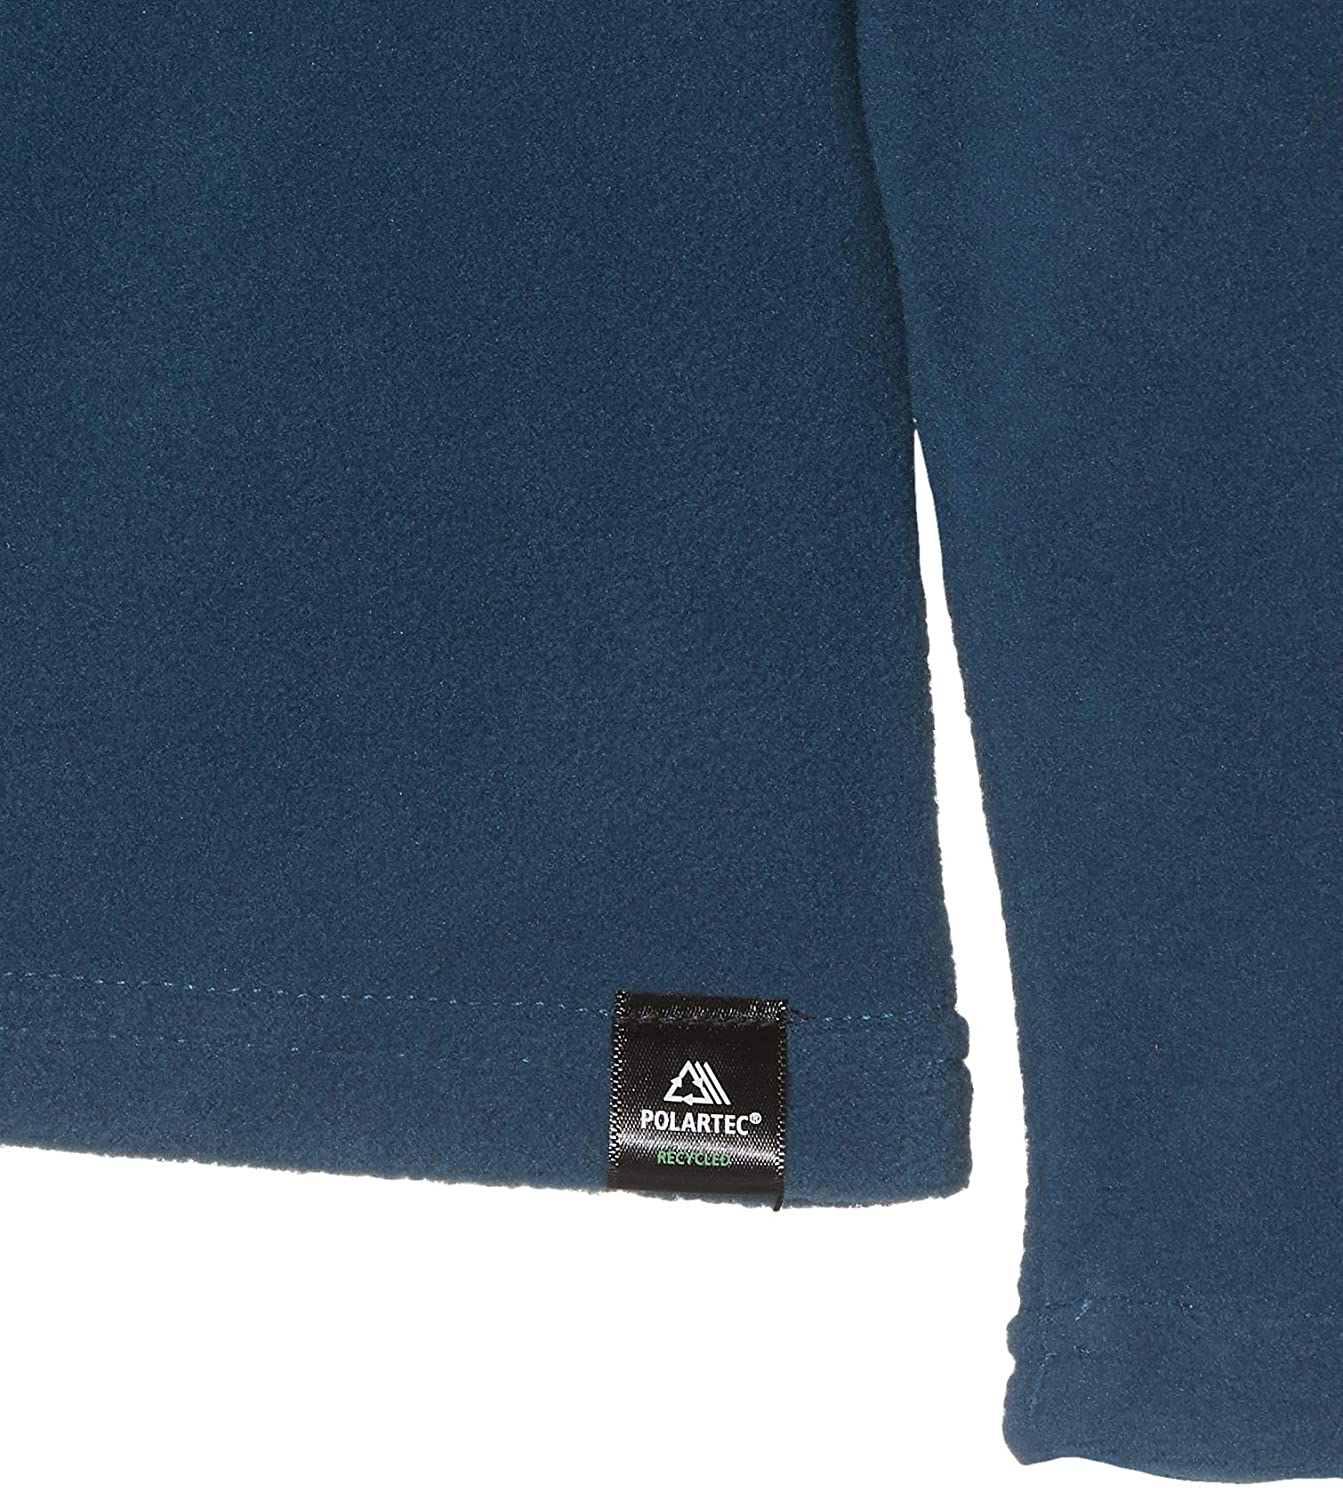 Pile Blue Wing Teal Y Glacier 1//4 Zip M The North Face Blu Bambino